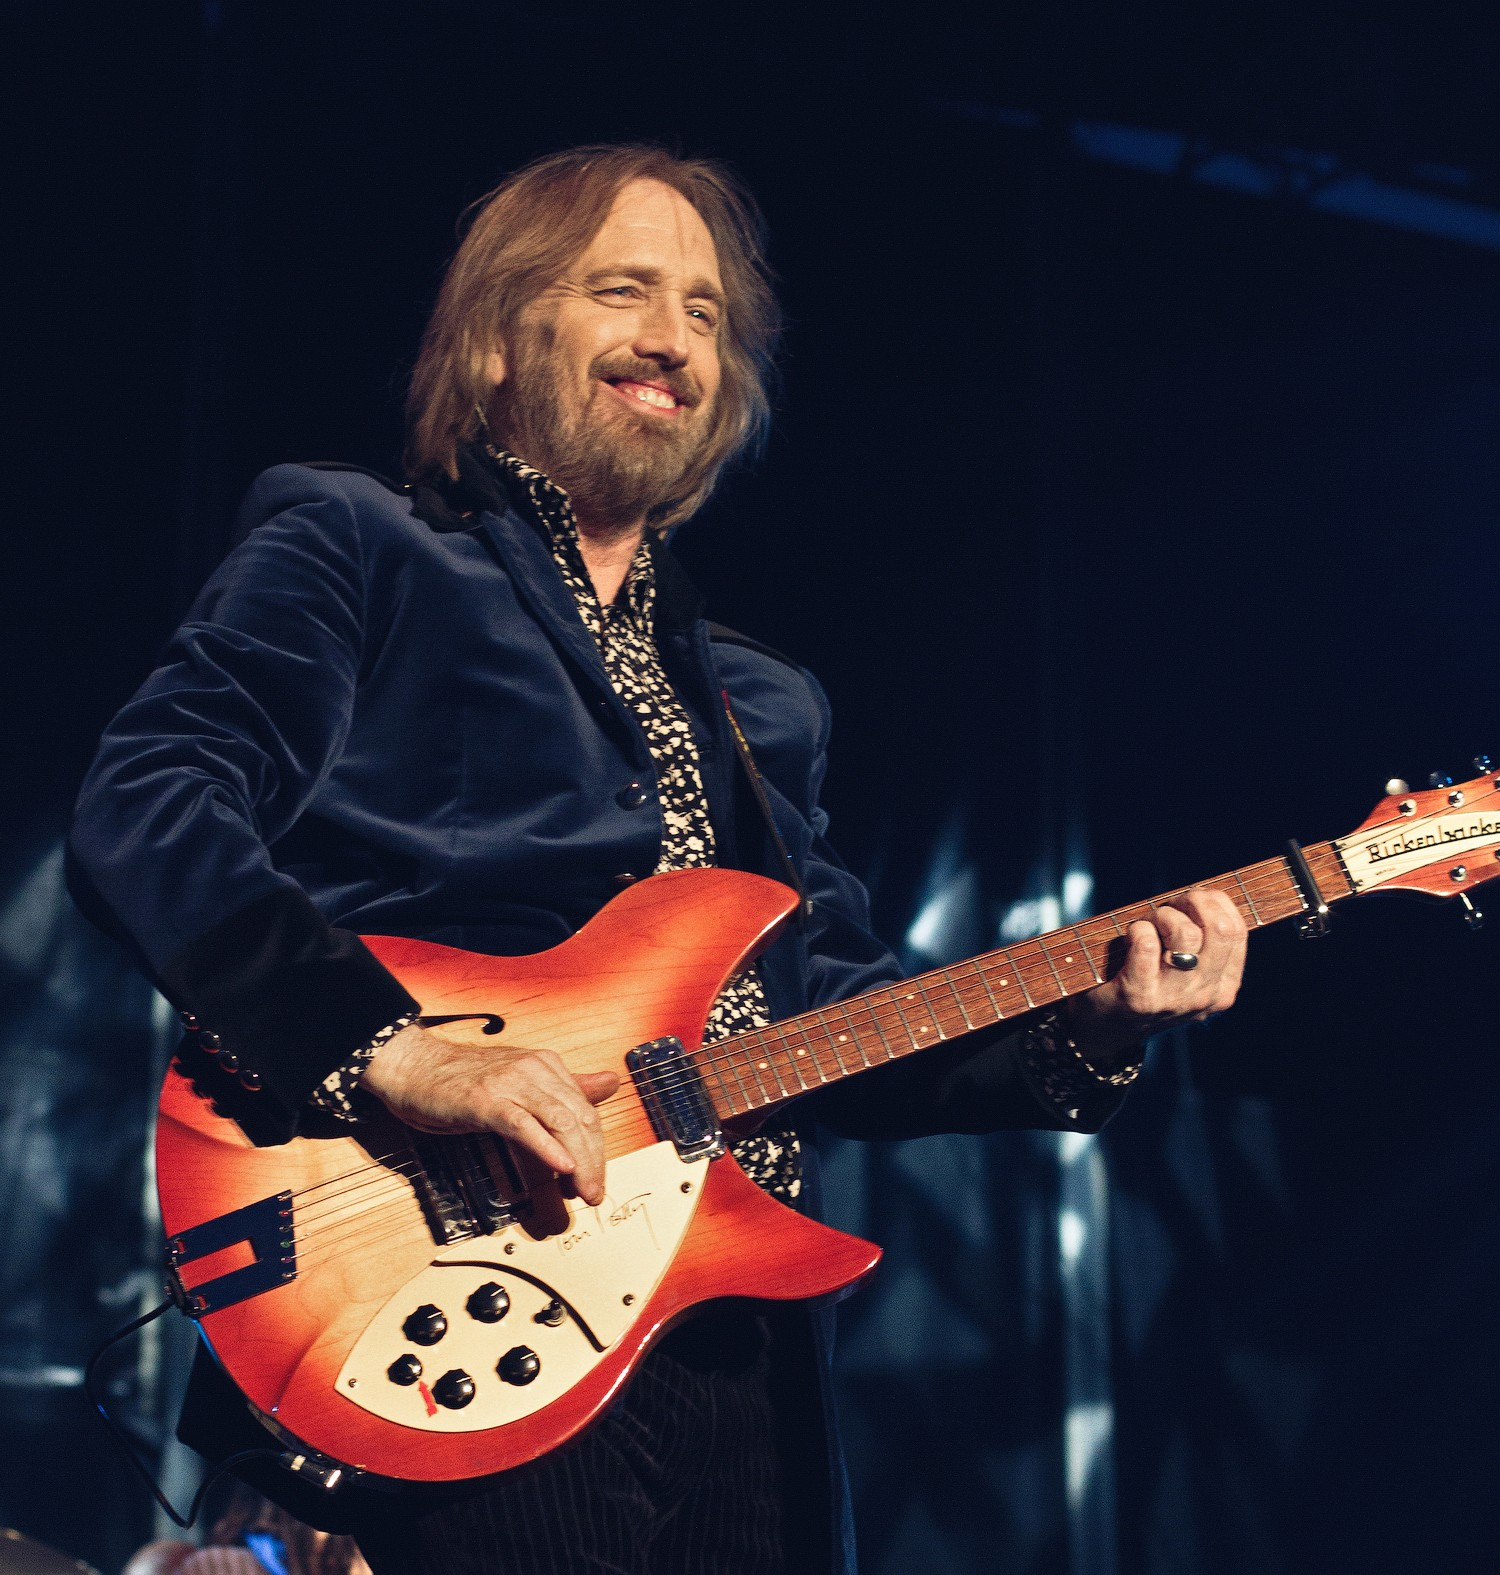 Tom Online The Heartbreak Tom Petty Confirmed To Have Passed Away At